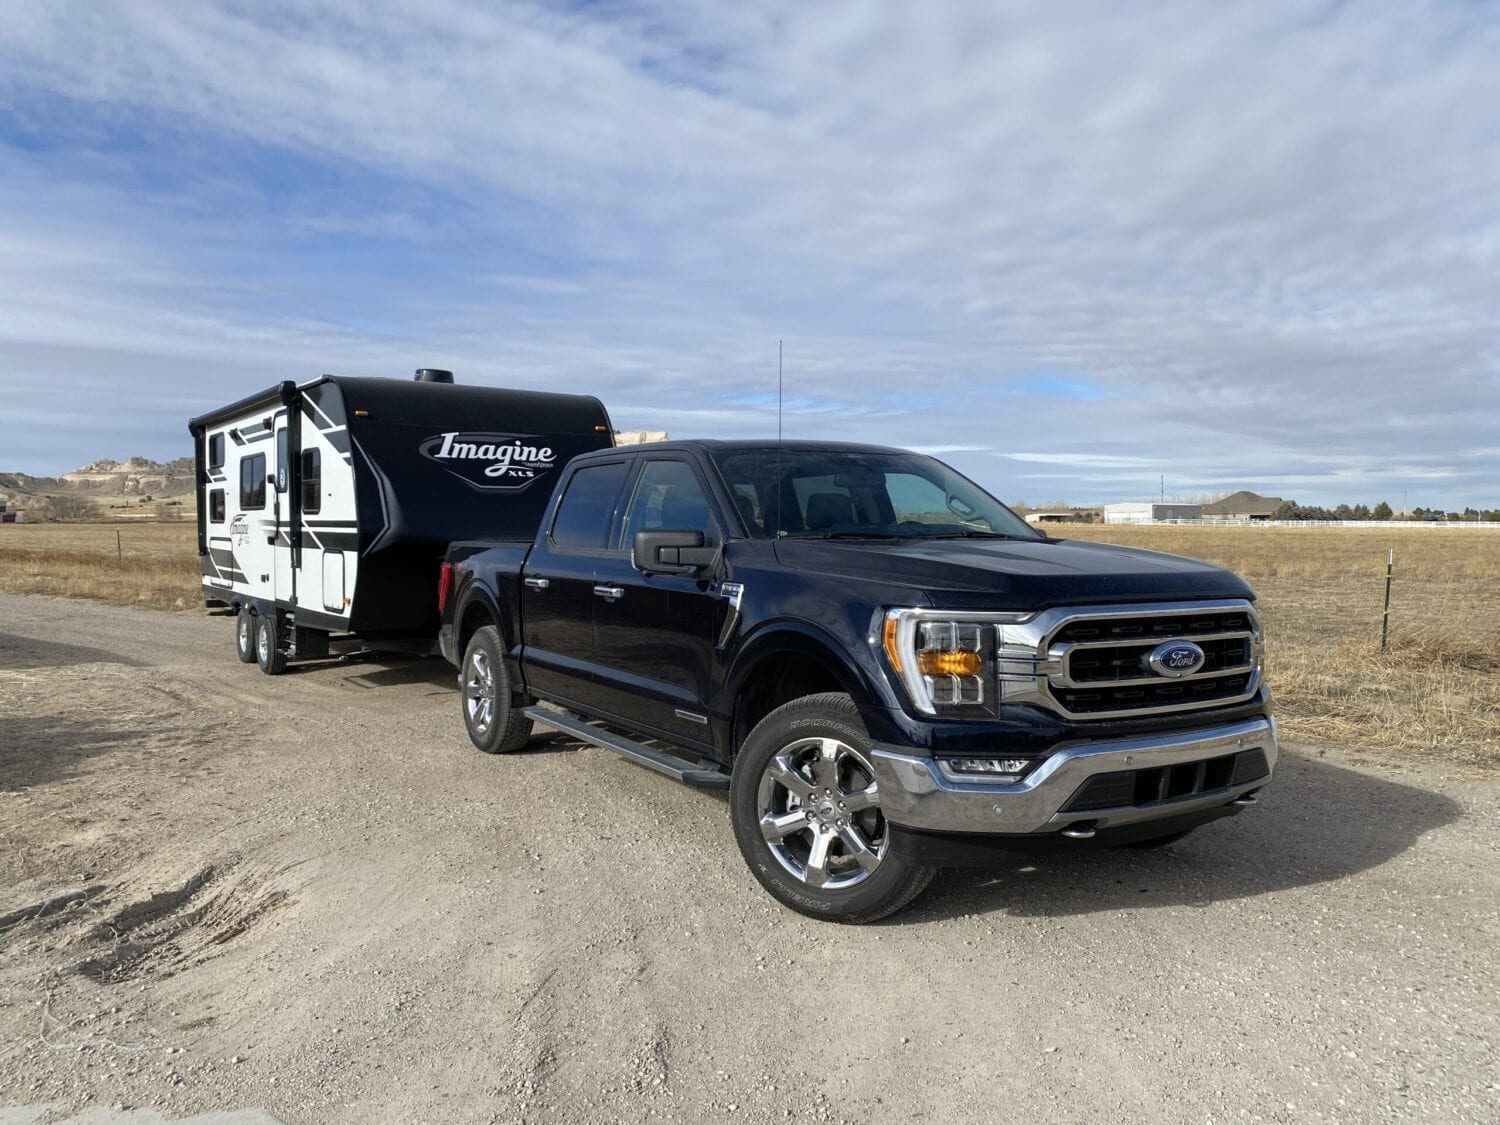 2021 Ford F-150 Hybrid towing